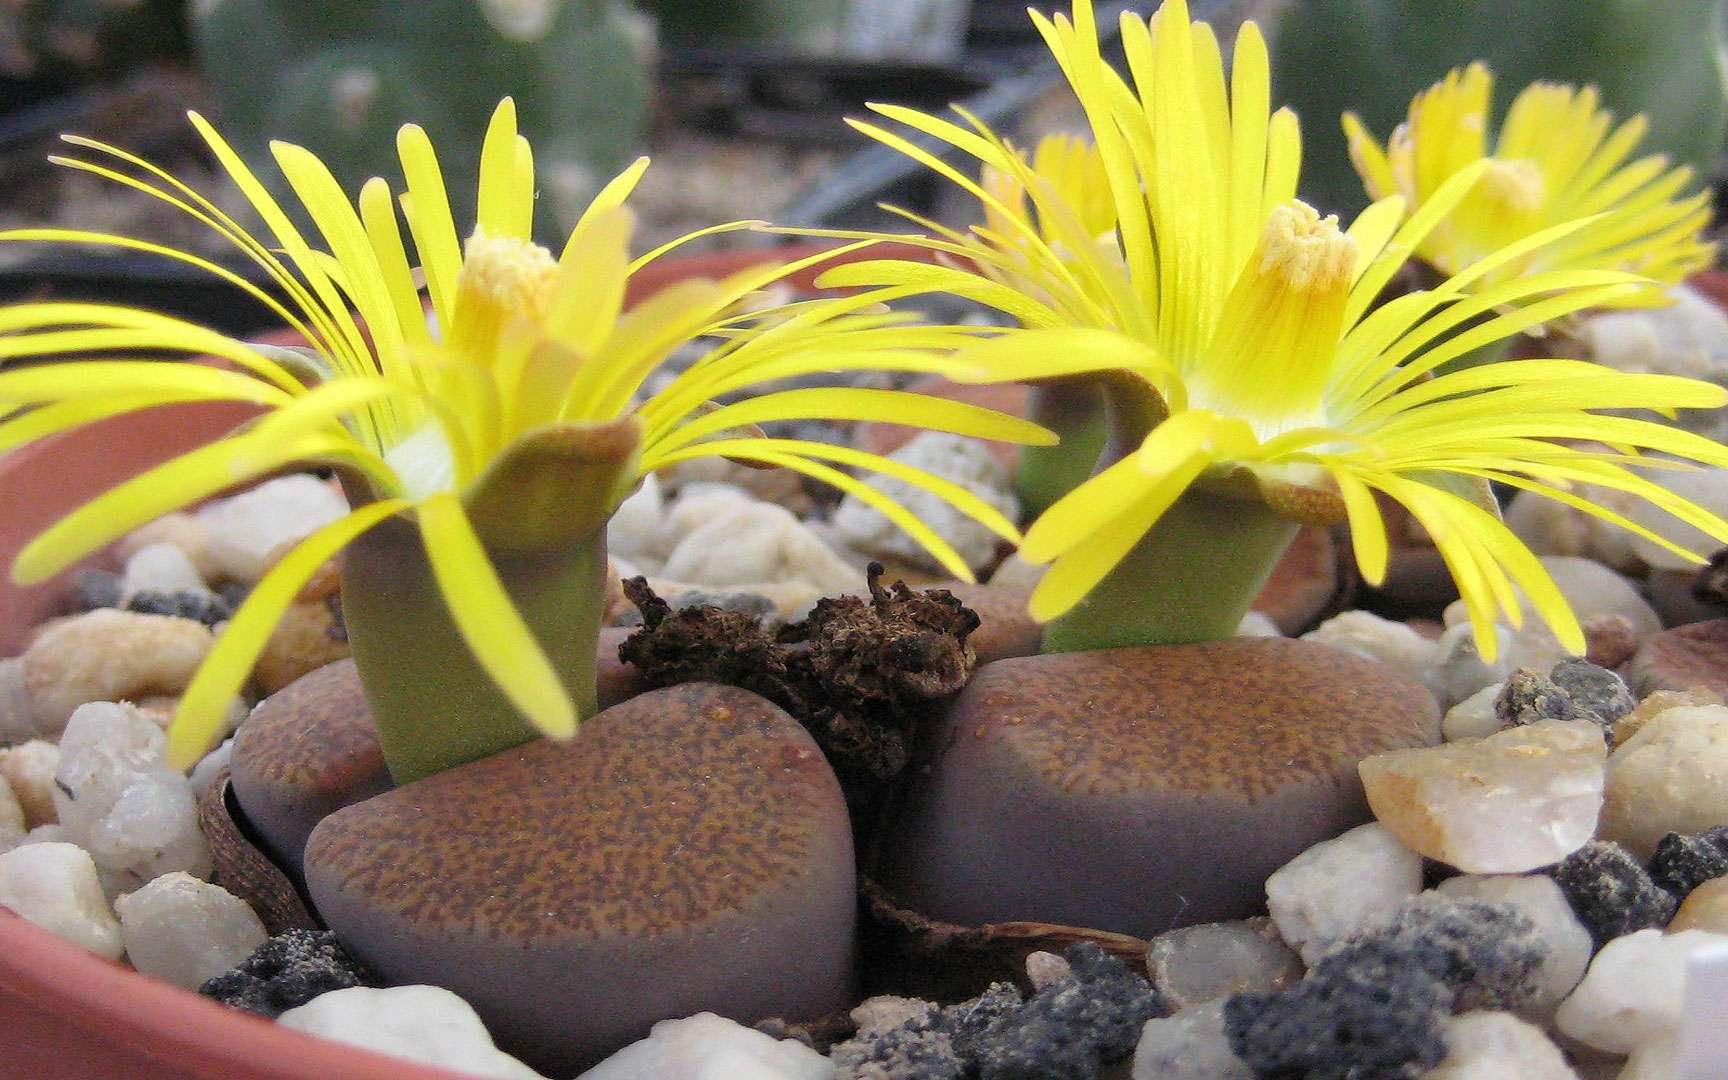 Lithops lesliei ssp.. Lithops lesliei ssp. lesliei v. mariae Cole-Nr. 141 in Kultur. © Michael Wolf, CC by-sa 3.0